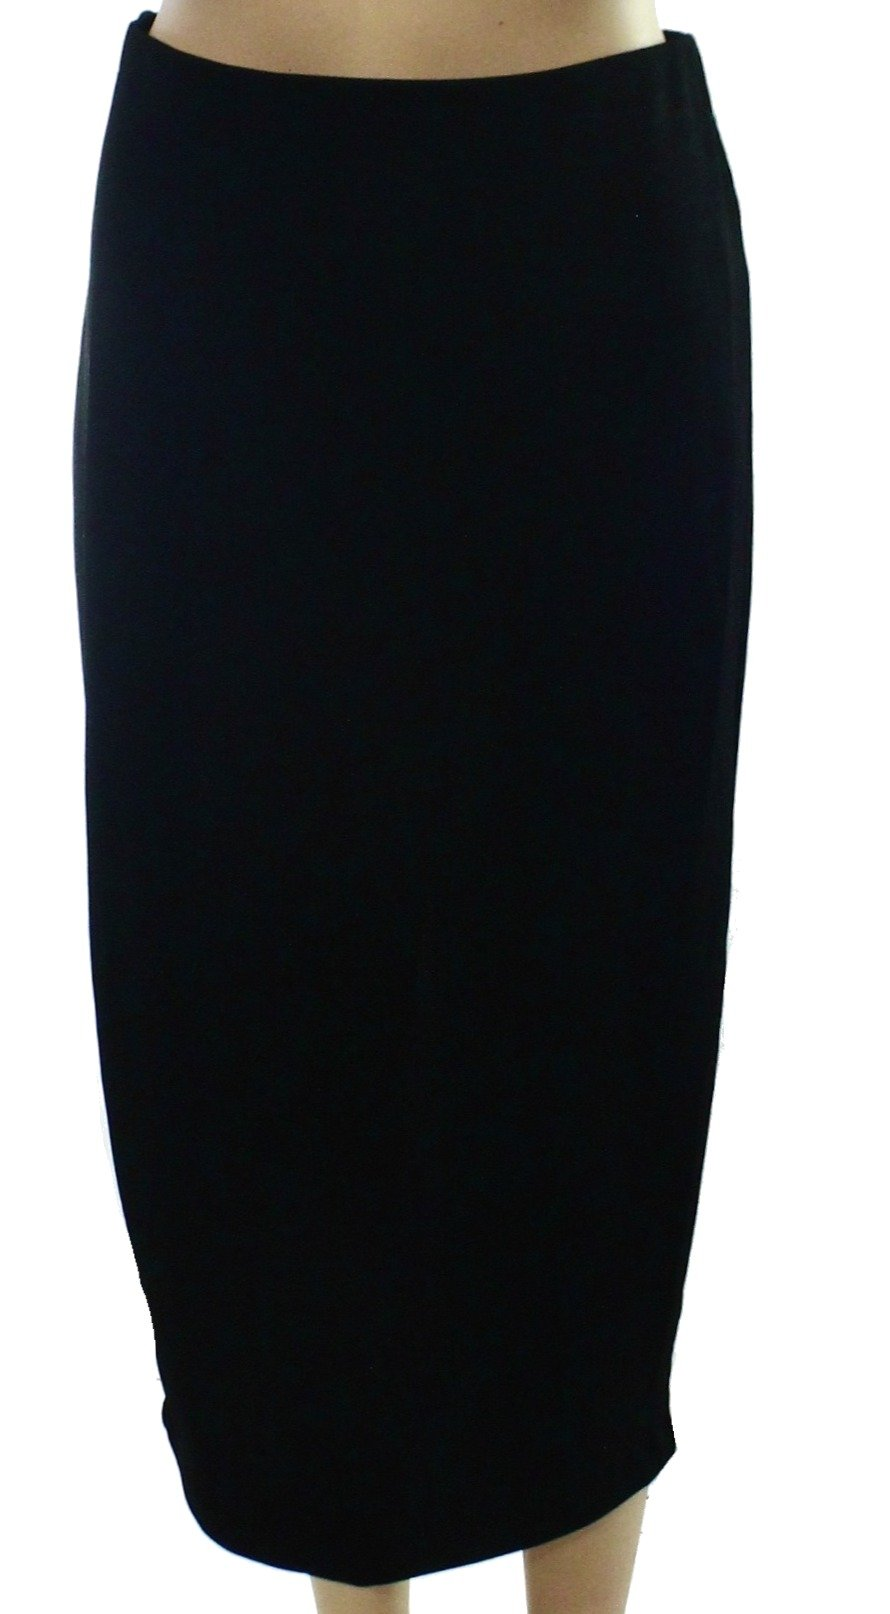 Harlowe & Graham Women's Small Straight Pencil Skirt Black S